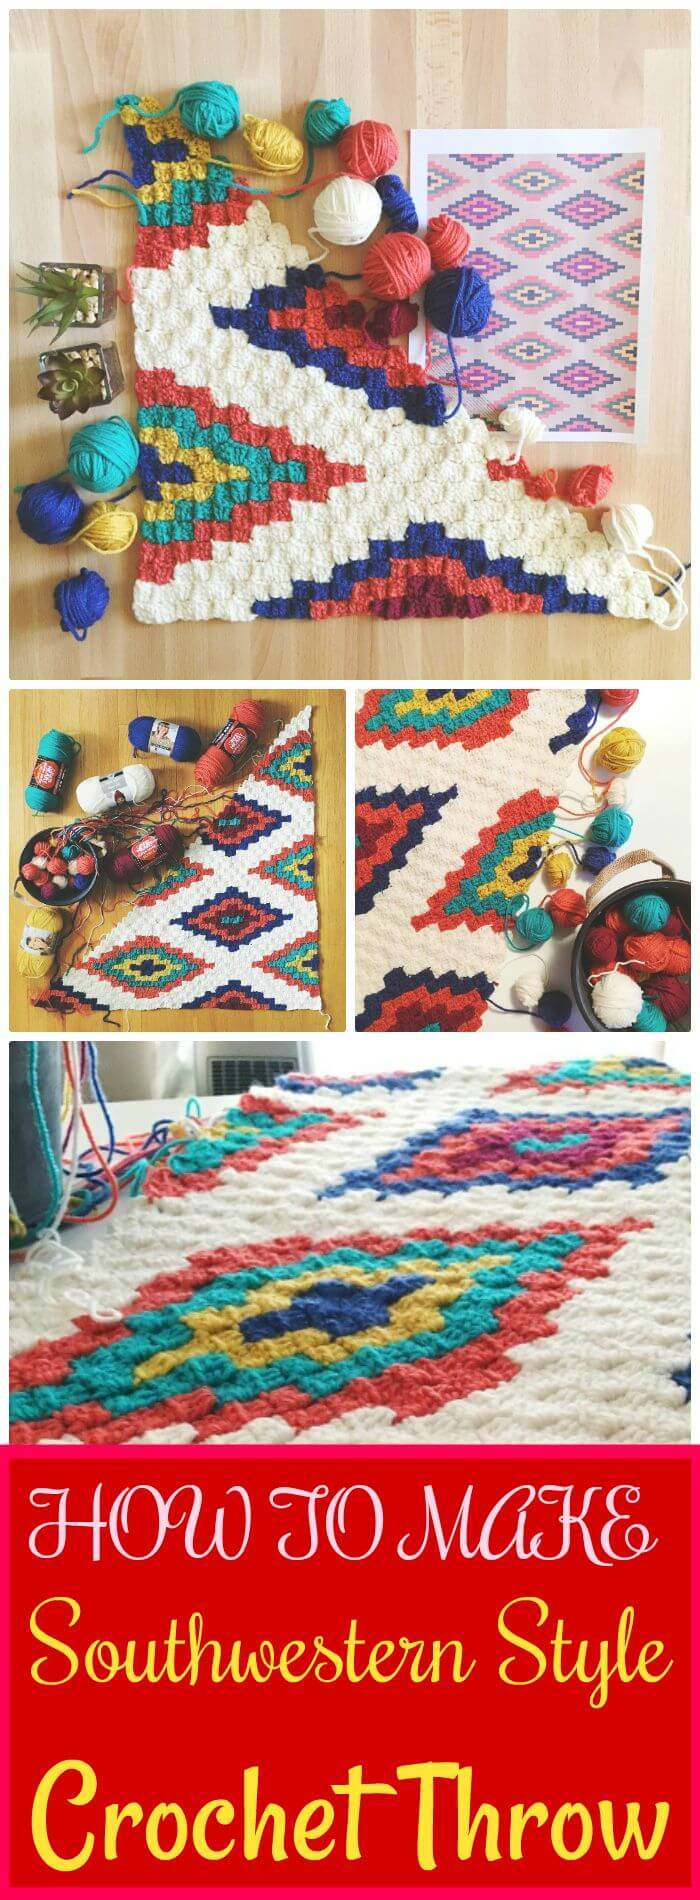 DIY Southwestern Style Crochet Throw, DIY c2c crochet techniques and instruciotns